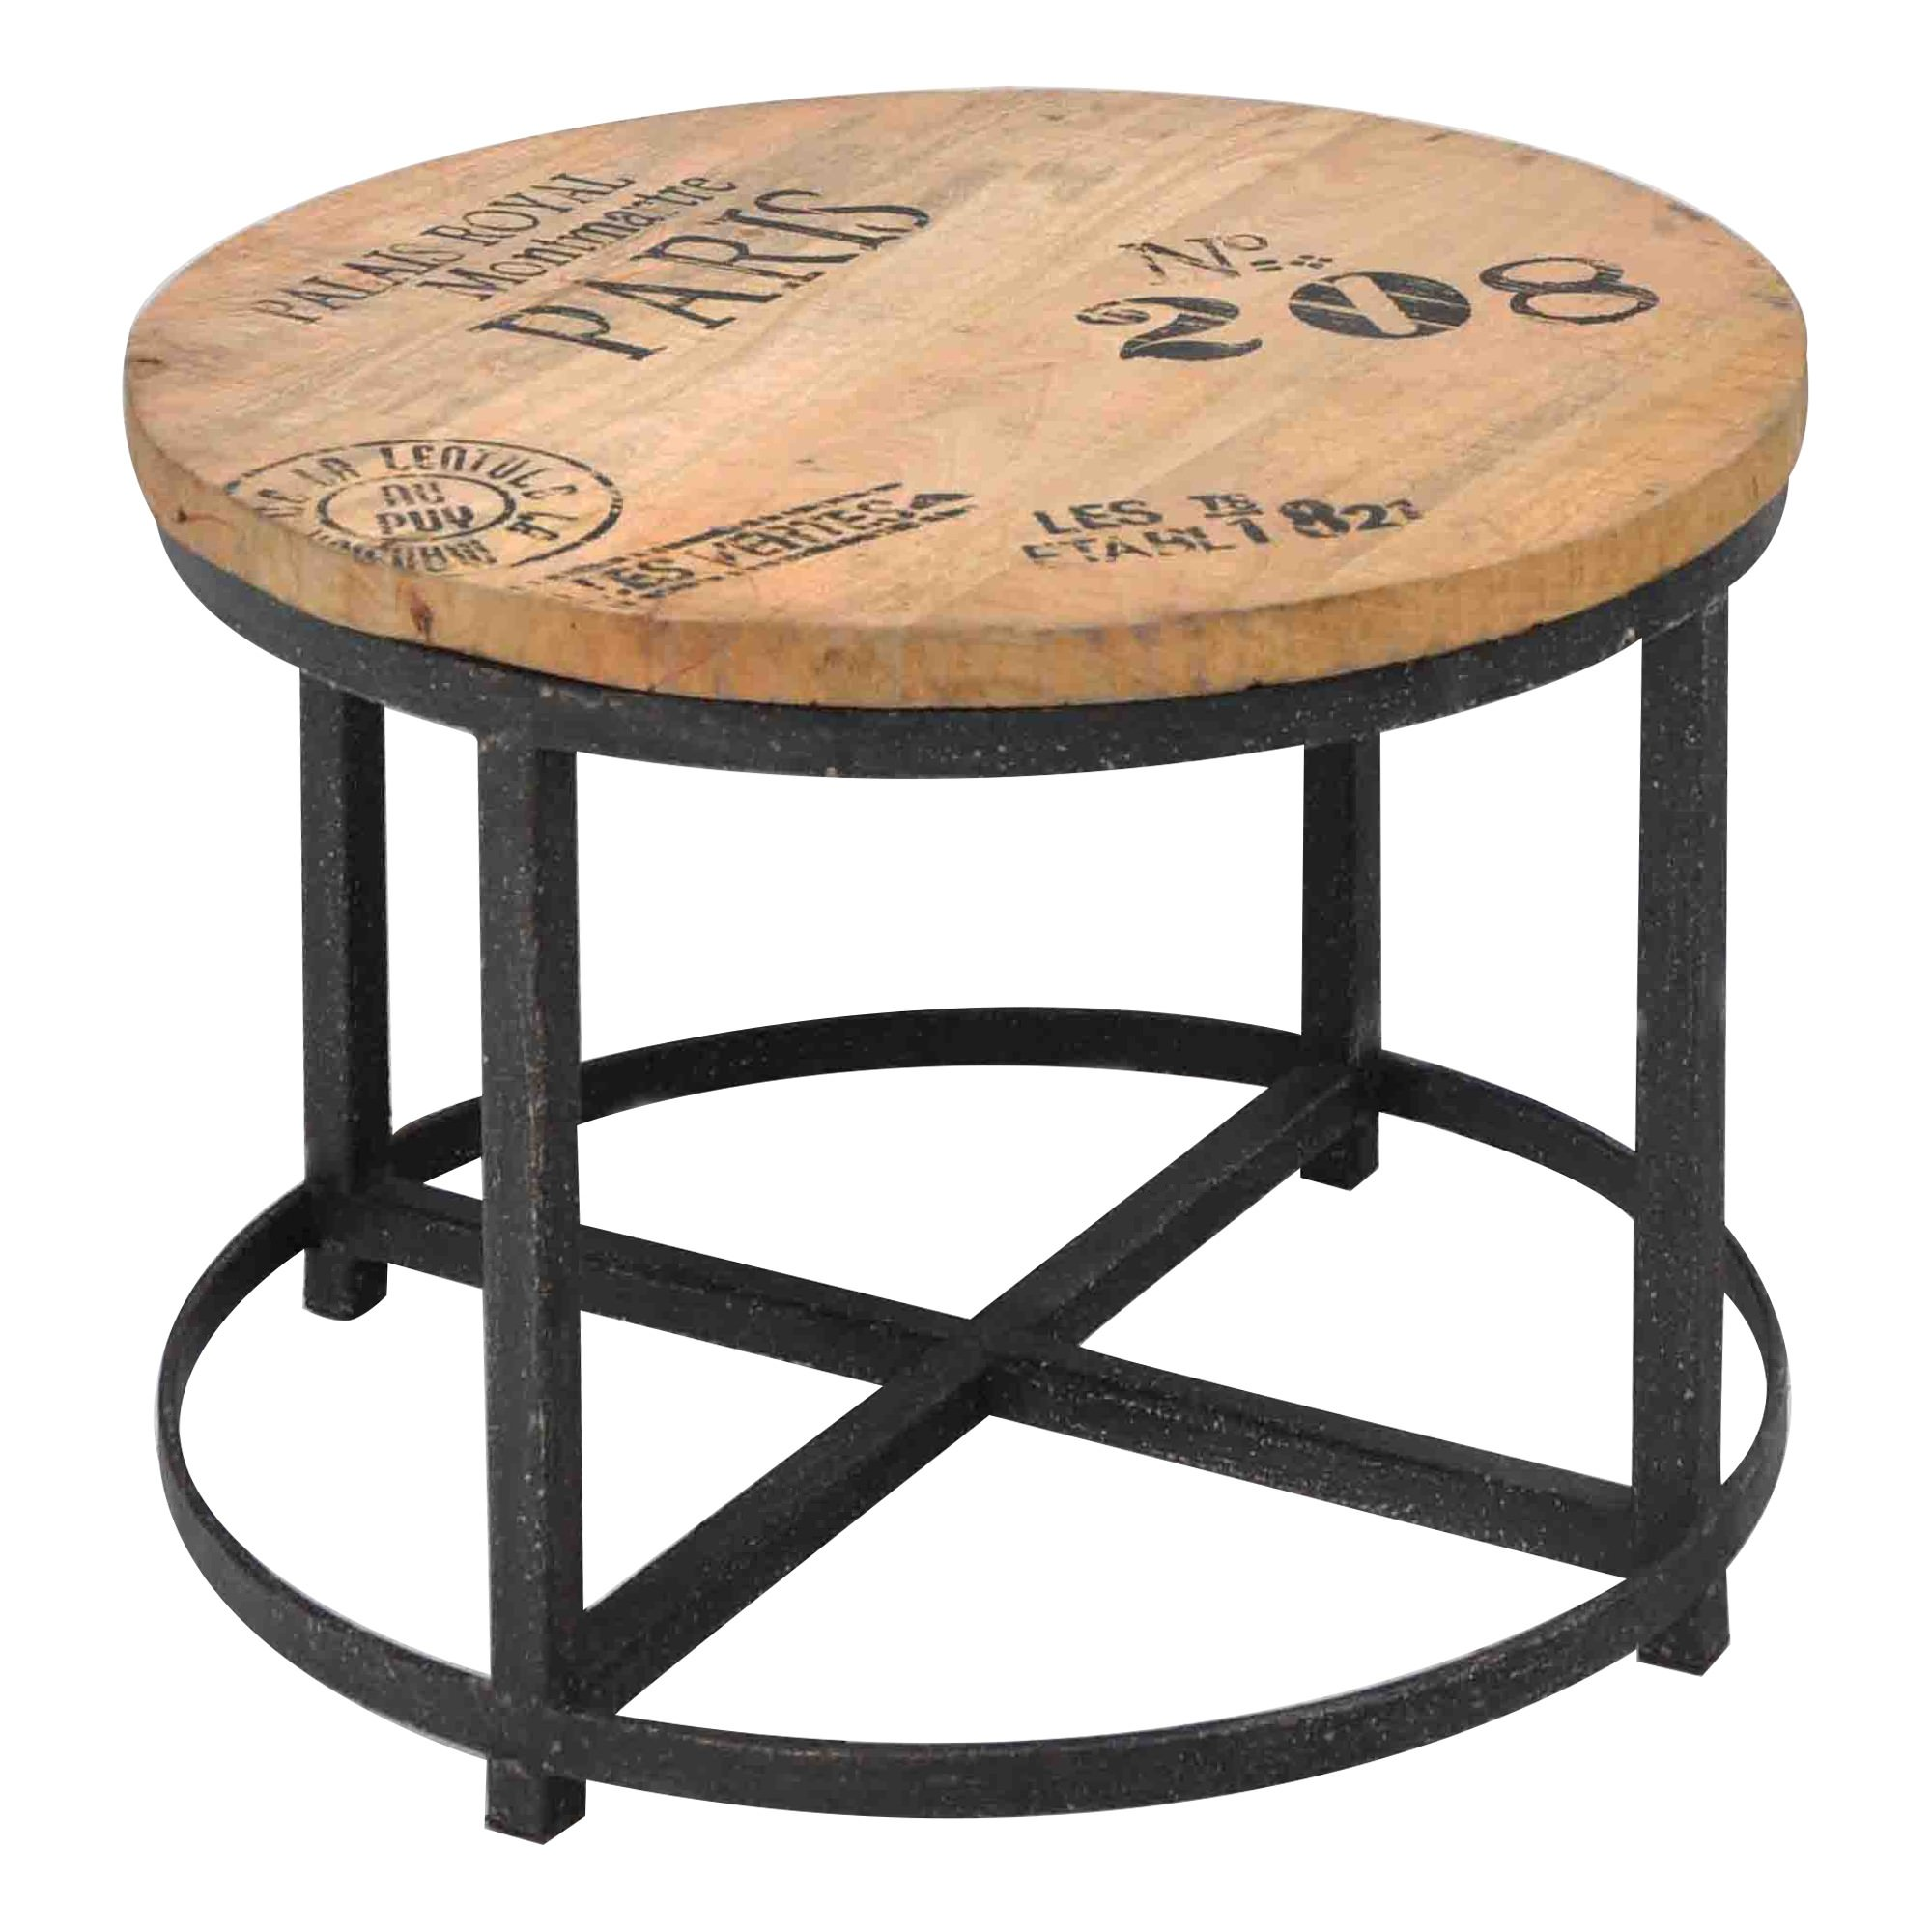 Hardwood Timber 60cm Round Coffee Table with Steel Base